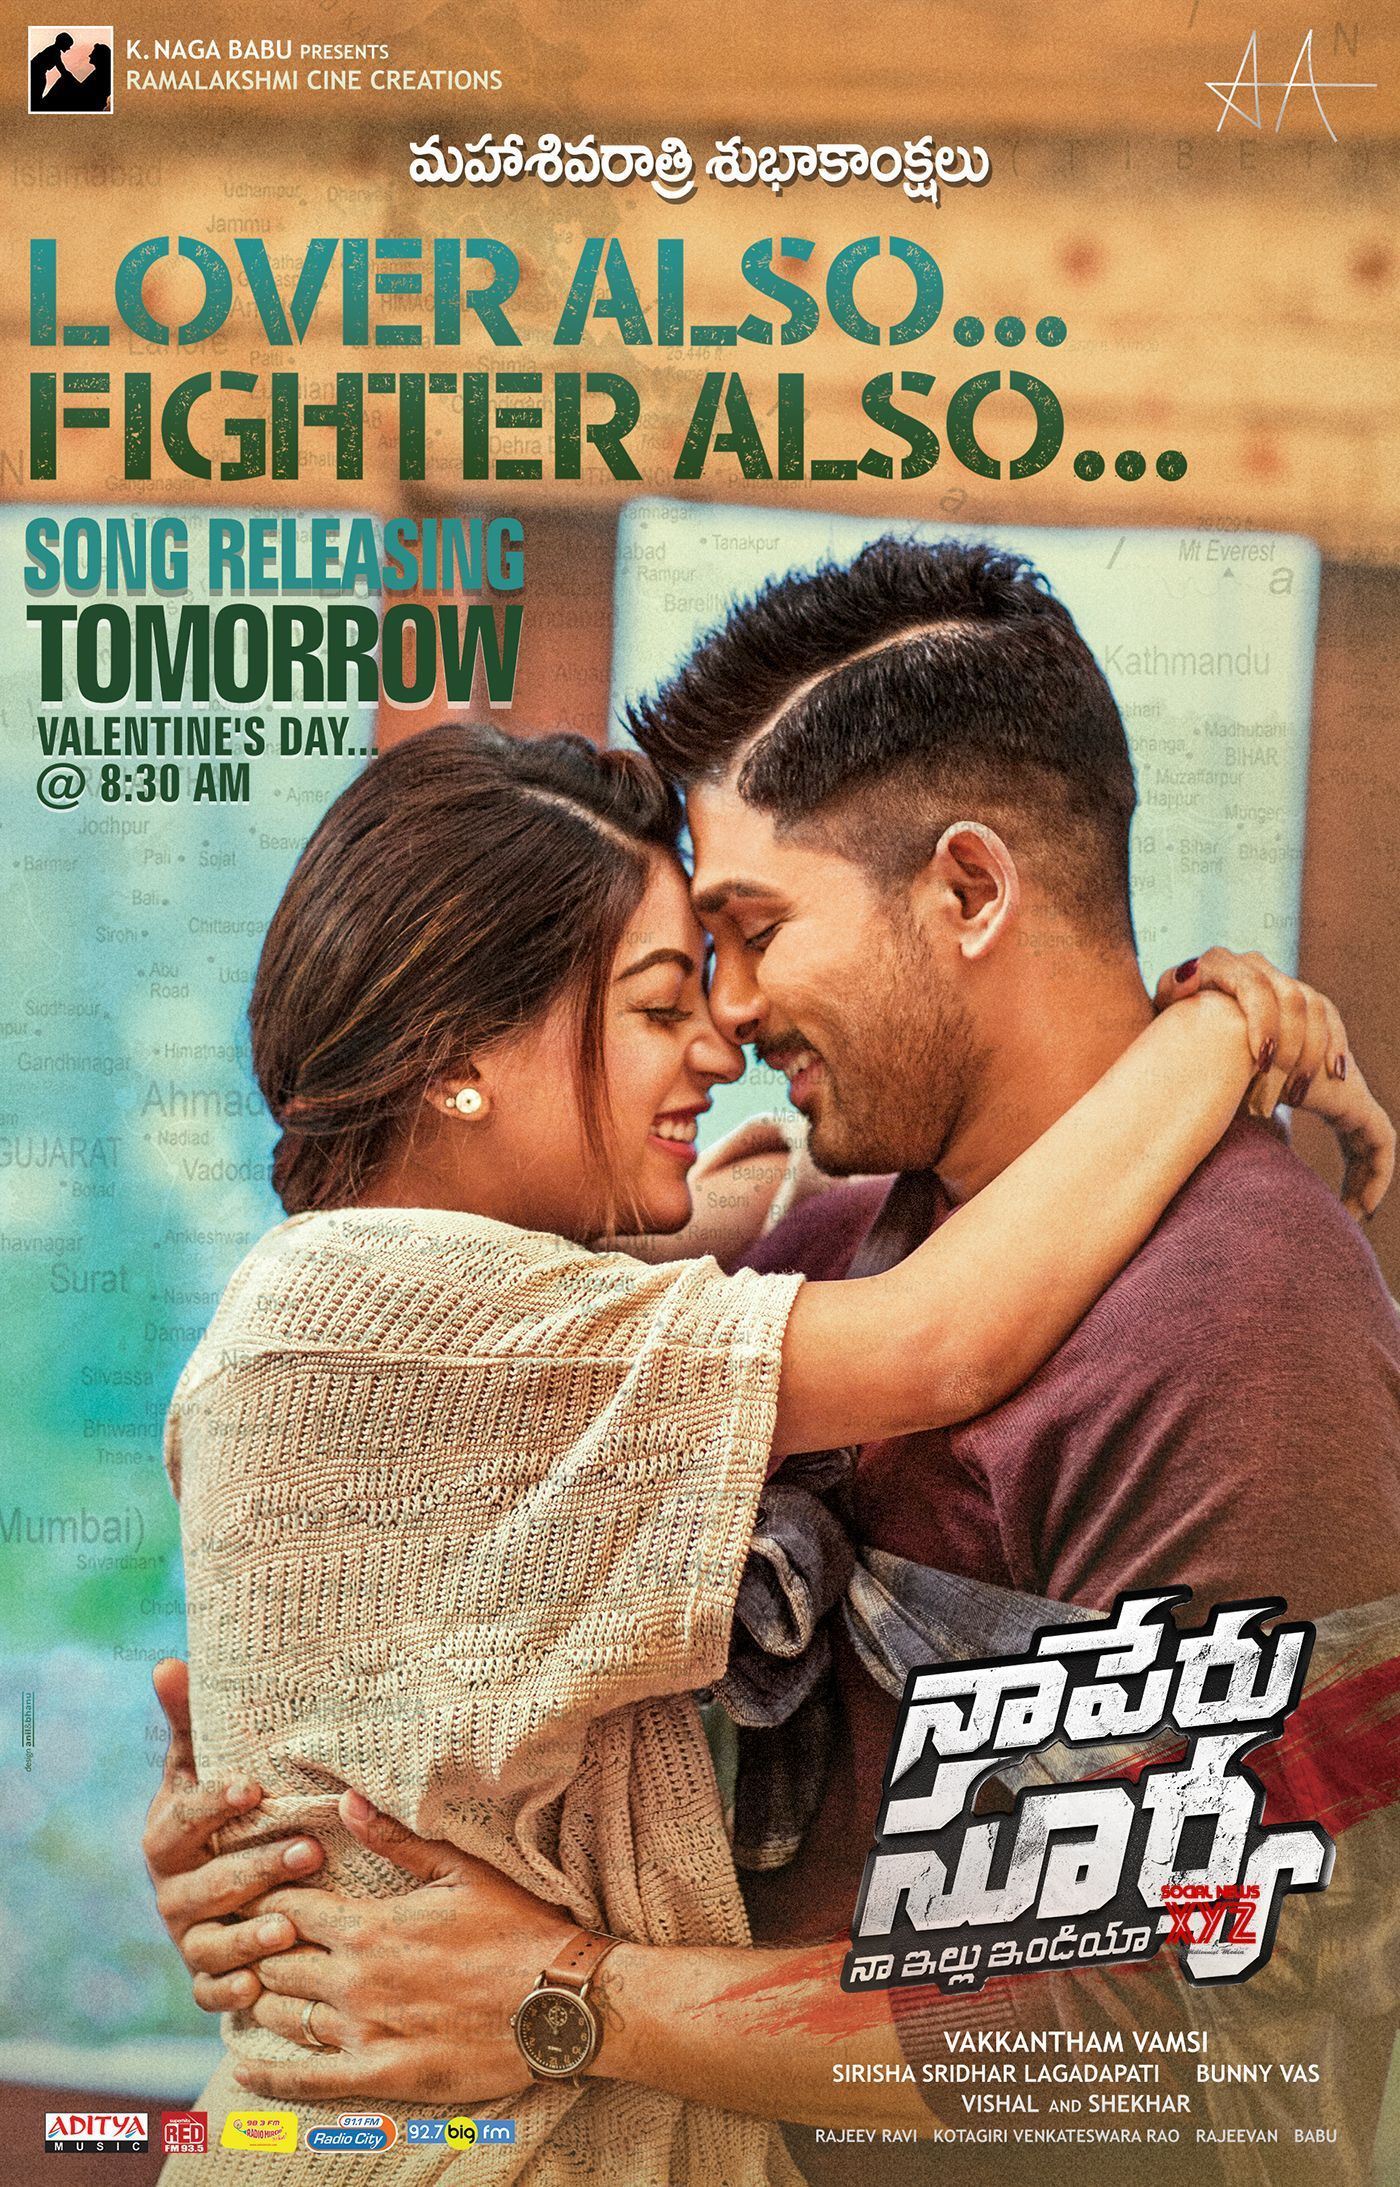 Naa Peru Surya Naa Illu India Song Releasing Tomorrow Hd Poster With Images Songs Film Video Download Movie Songs